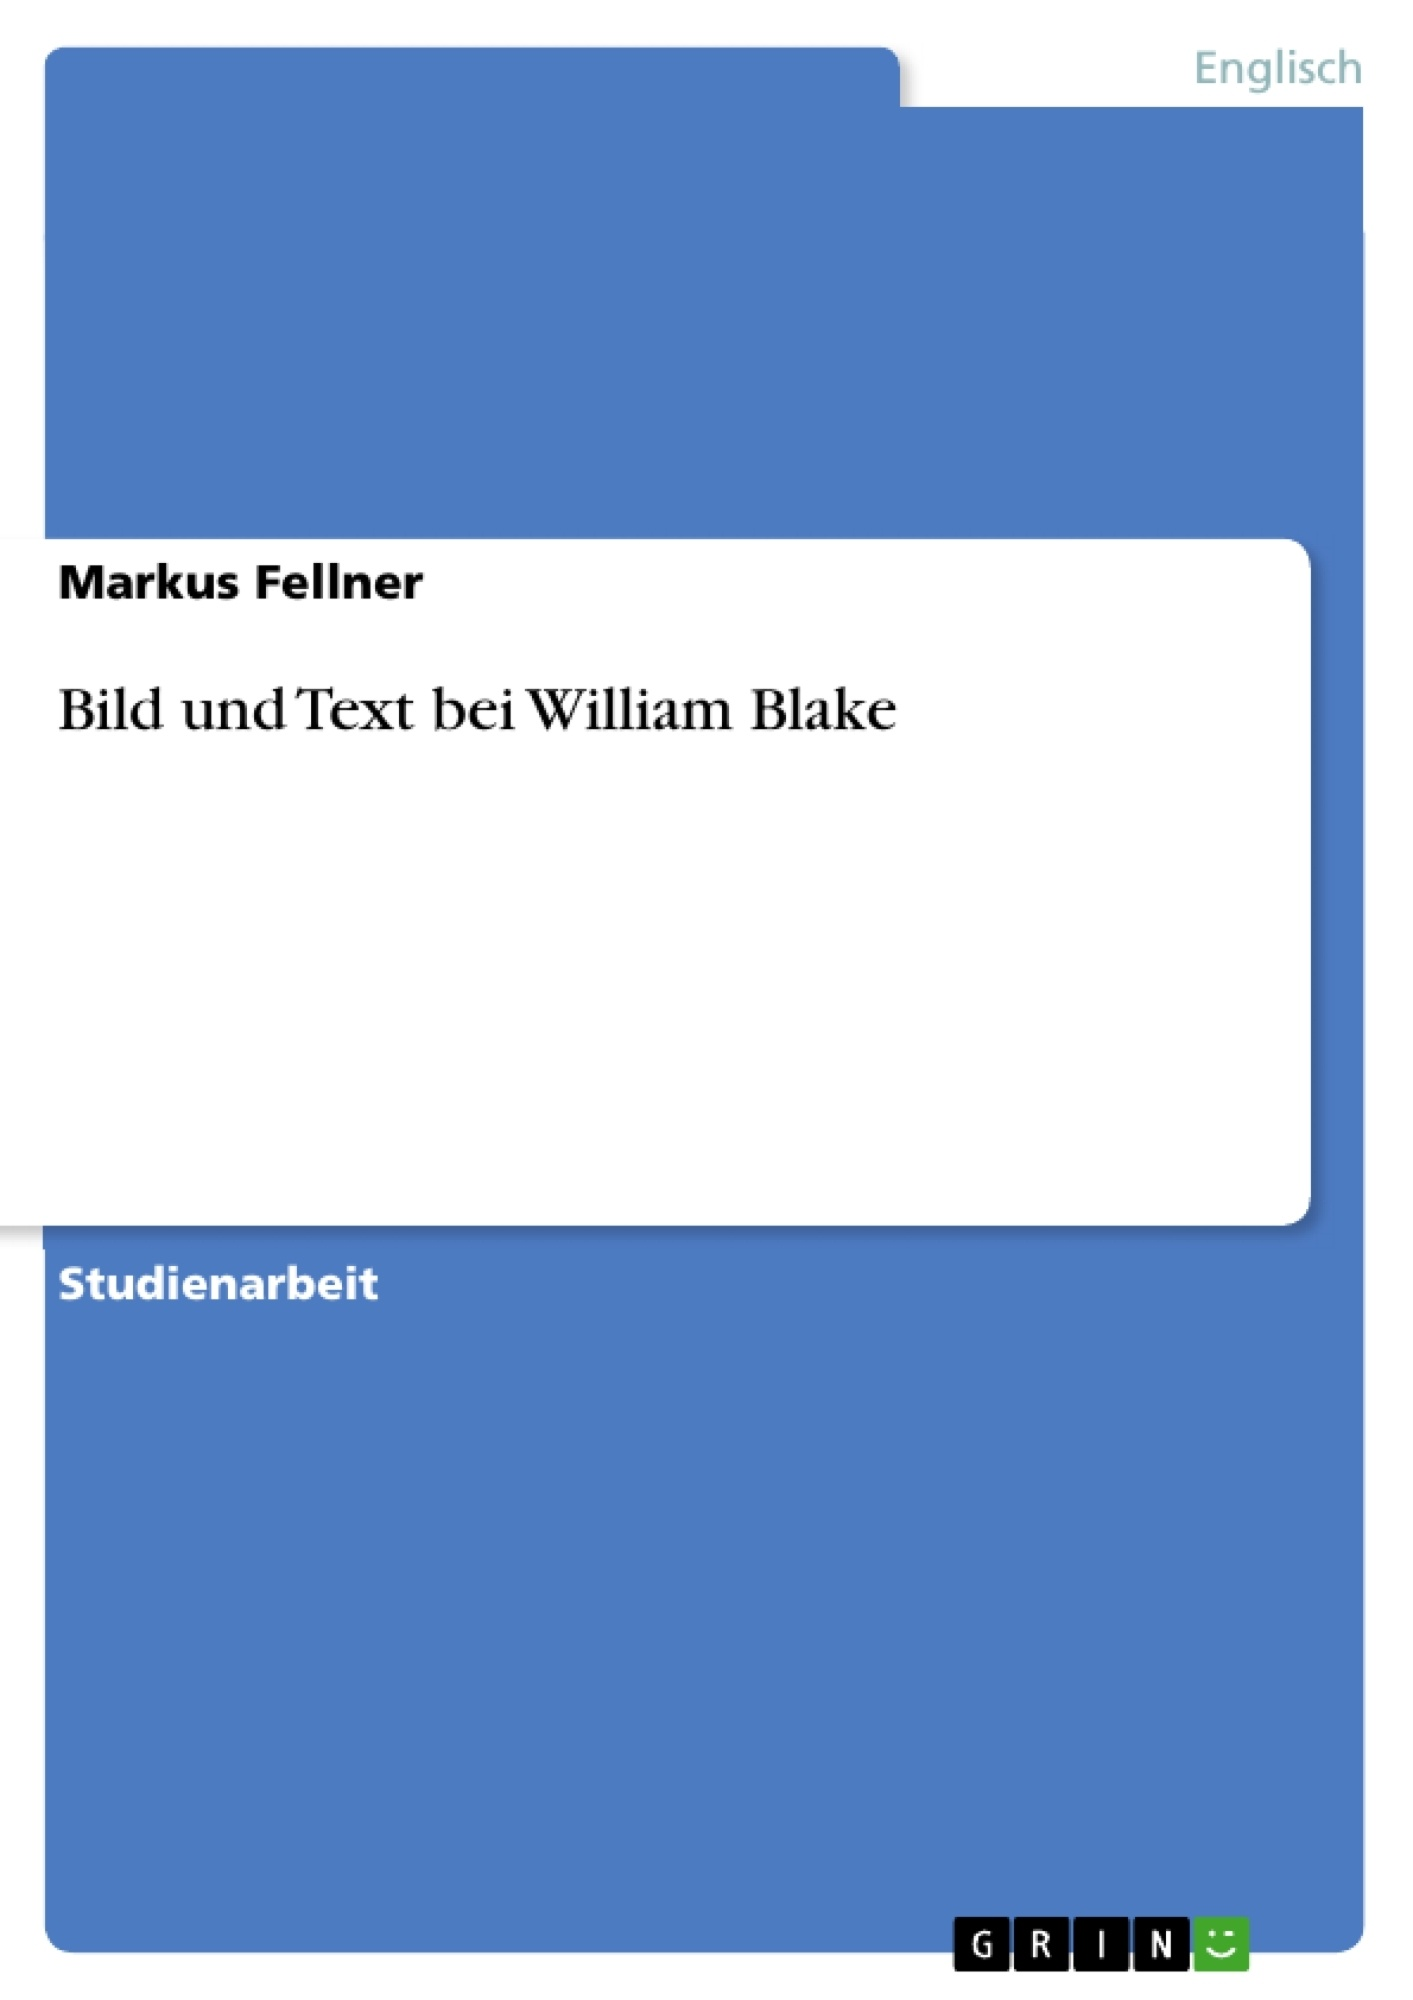 Titel: Bild und Text bei William Blake